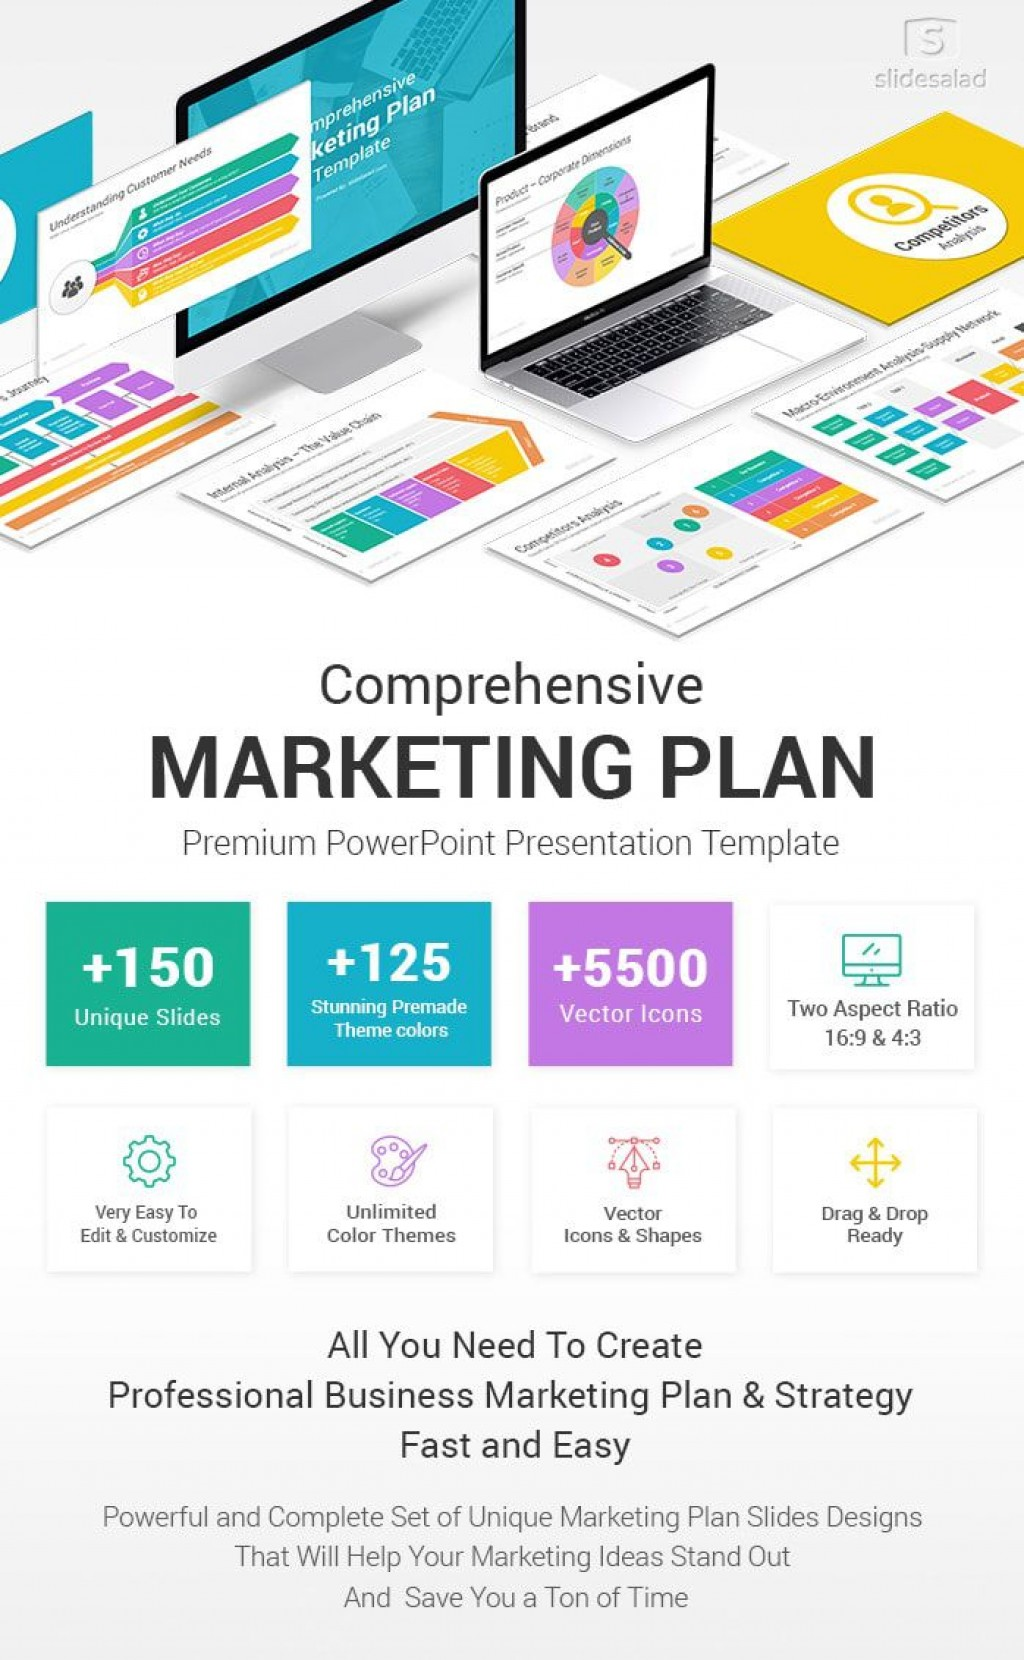 009 Unique Marketing Plan Template Free Powerpoint Inspiration  DownloadLarge